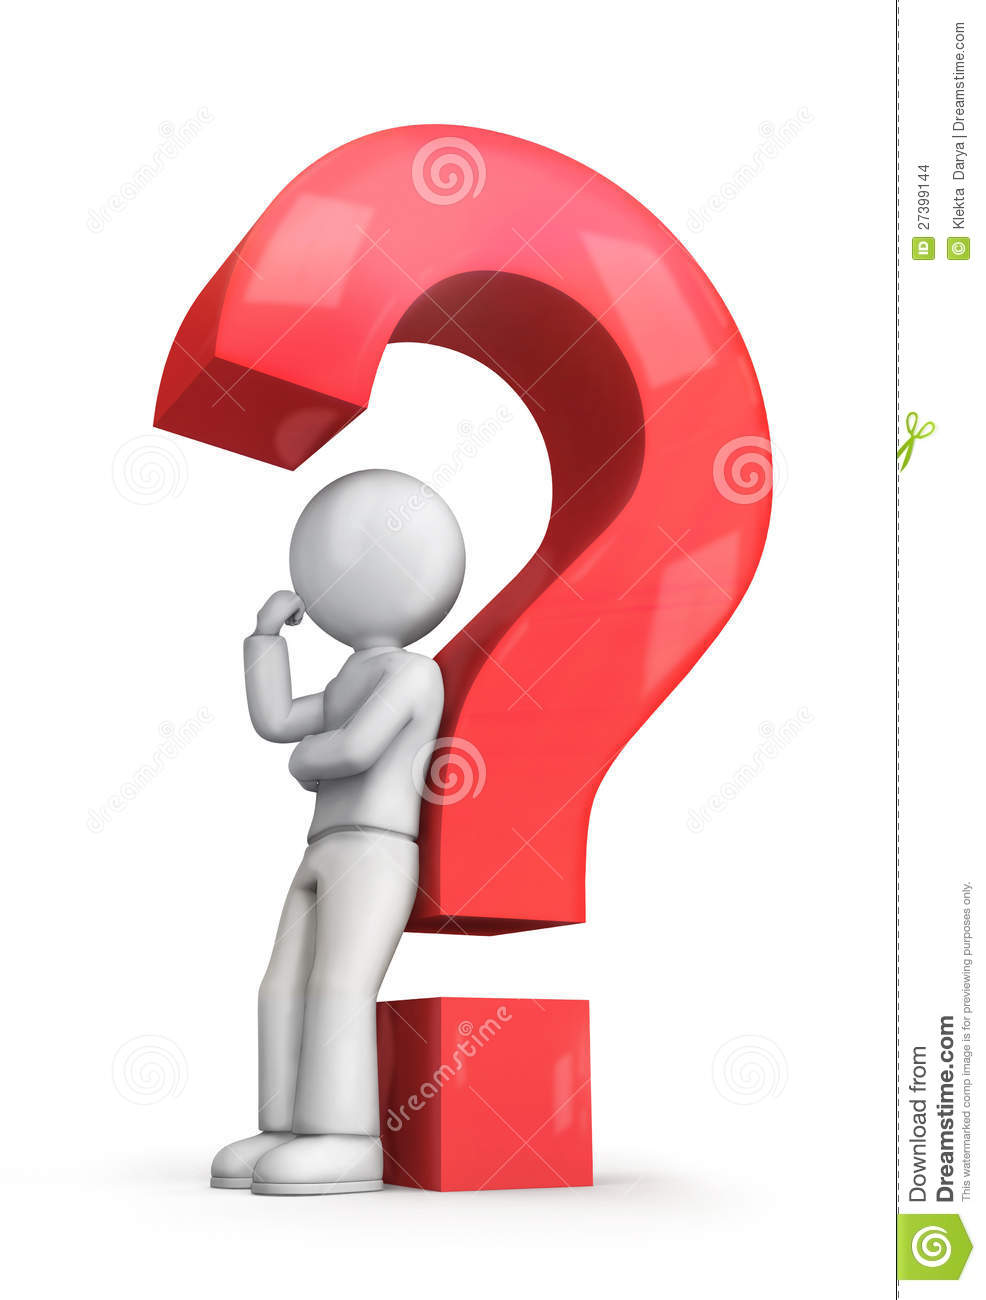 Red Question Mark Stock Images - Image: 27399144